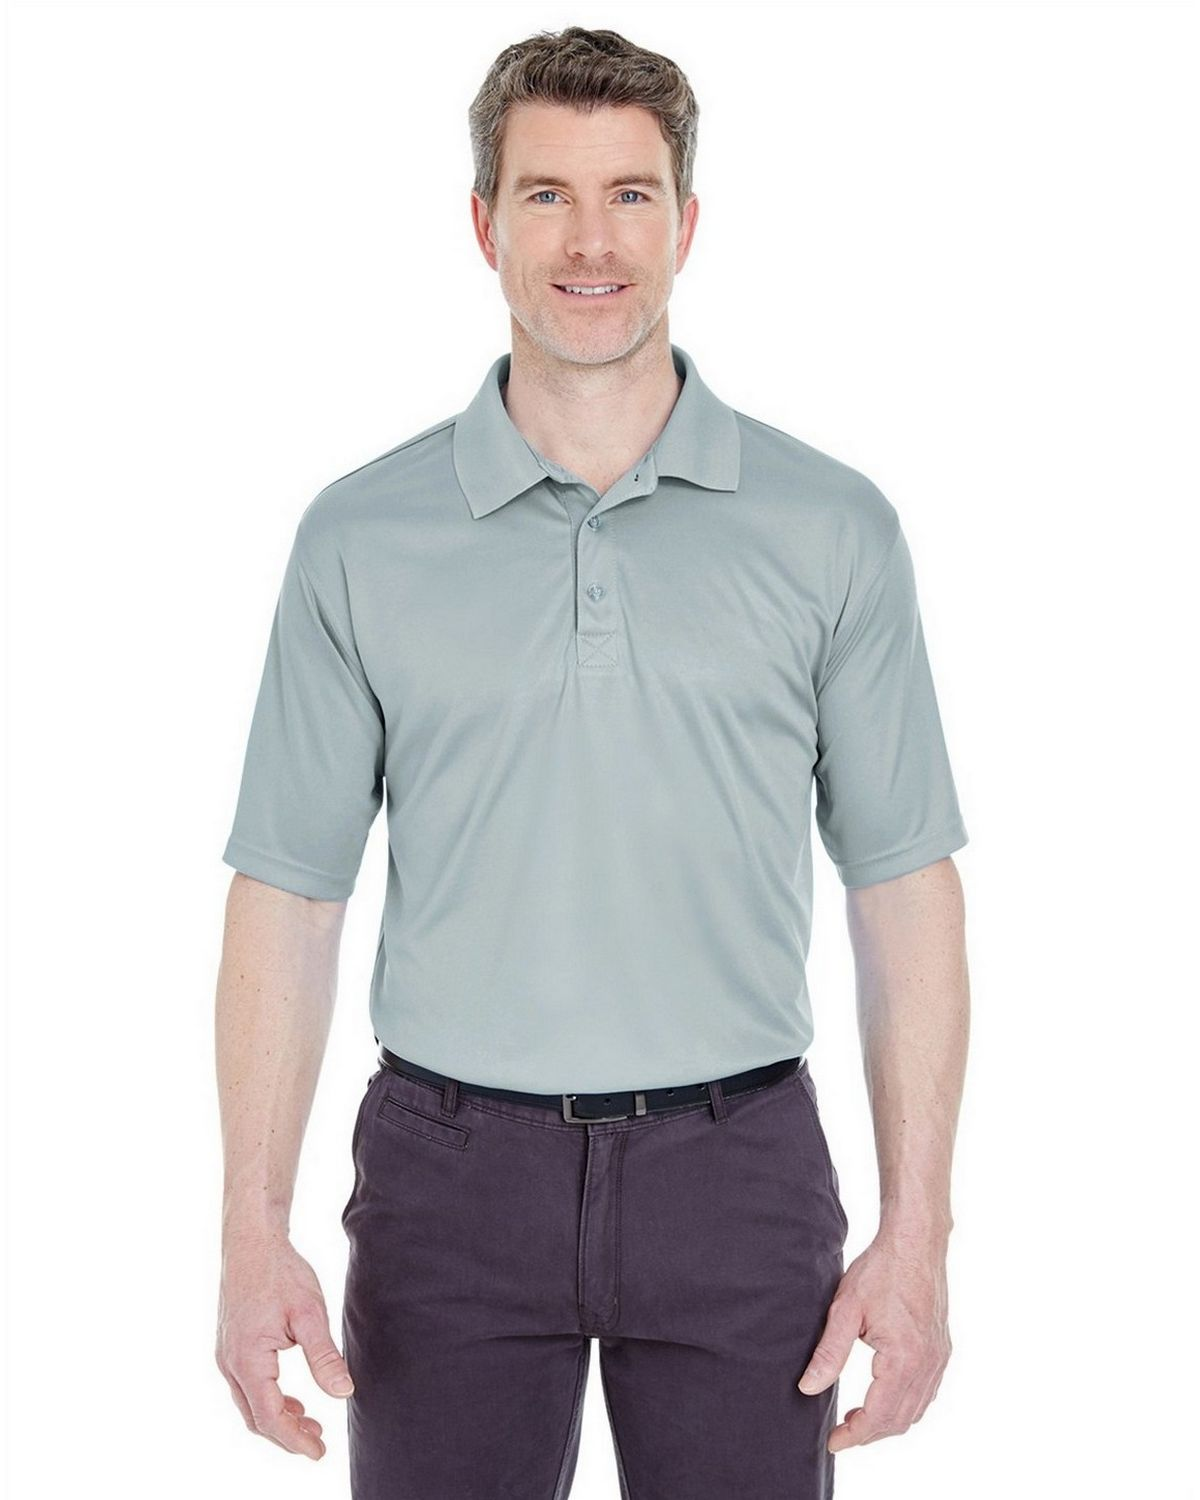 Ultraclub 8425 Performance Interlock Polo - Grey - XL 8425